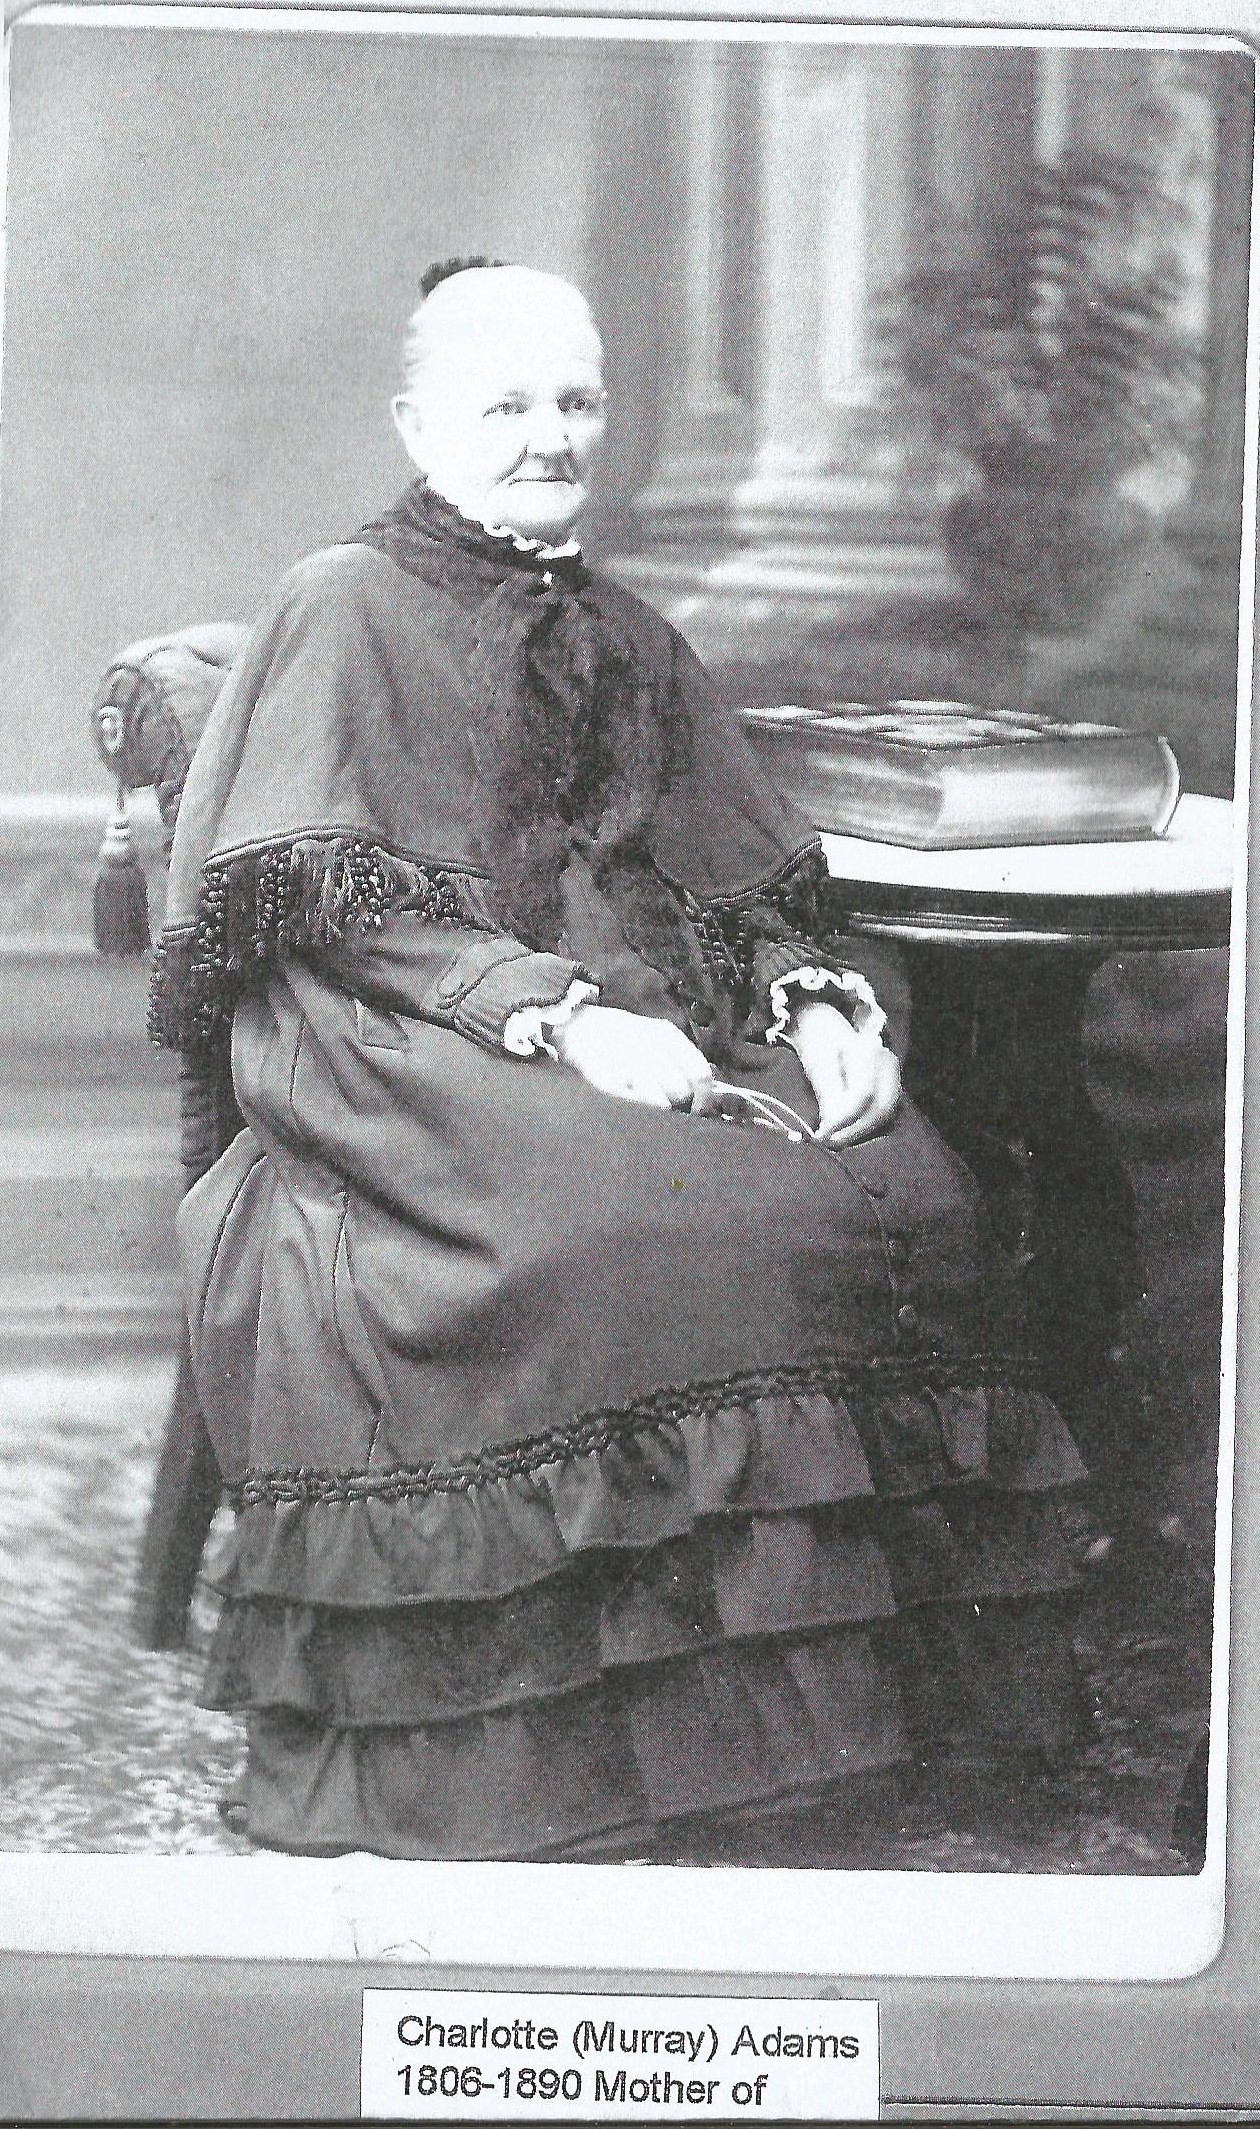 charlotte murray adams.jpg